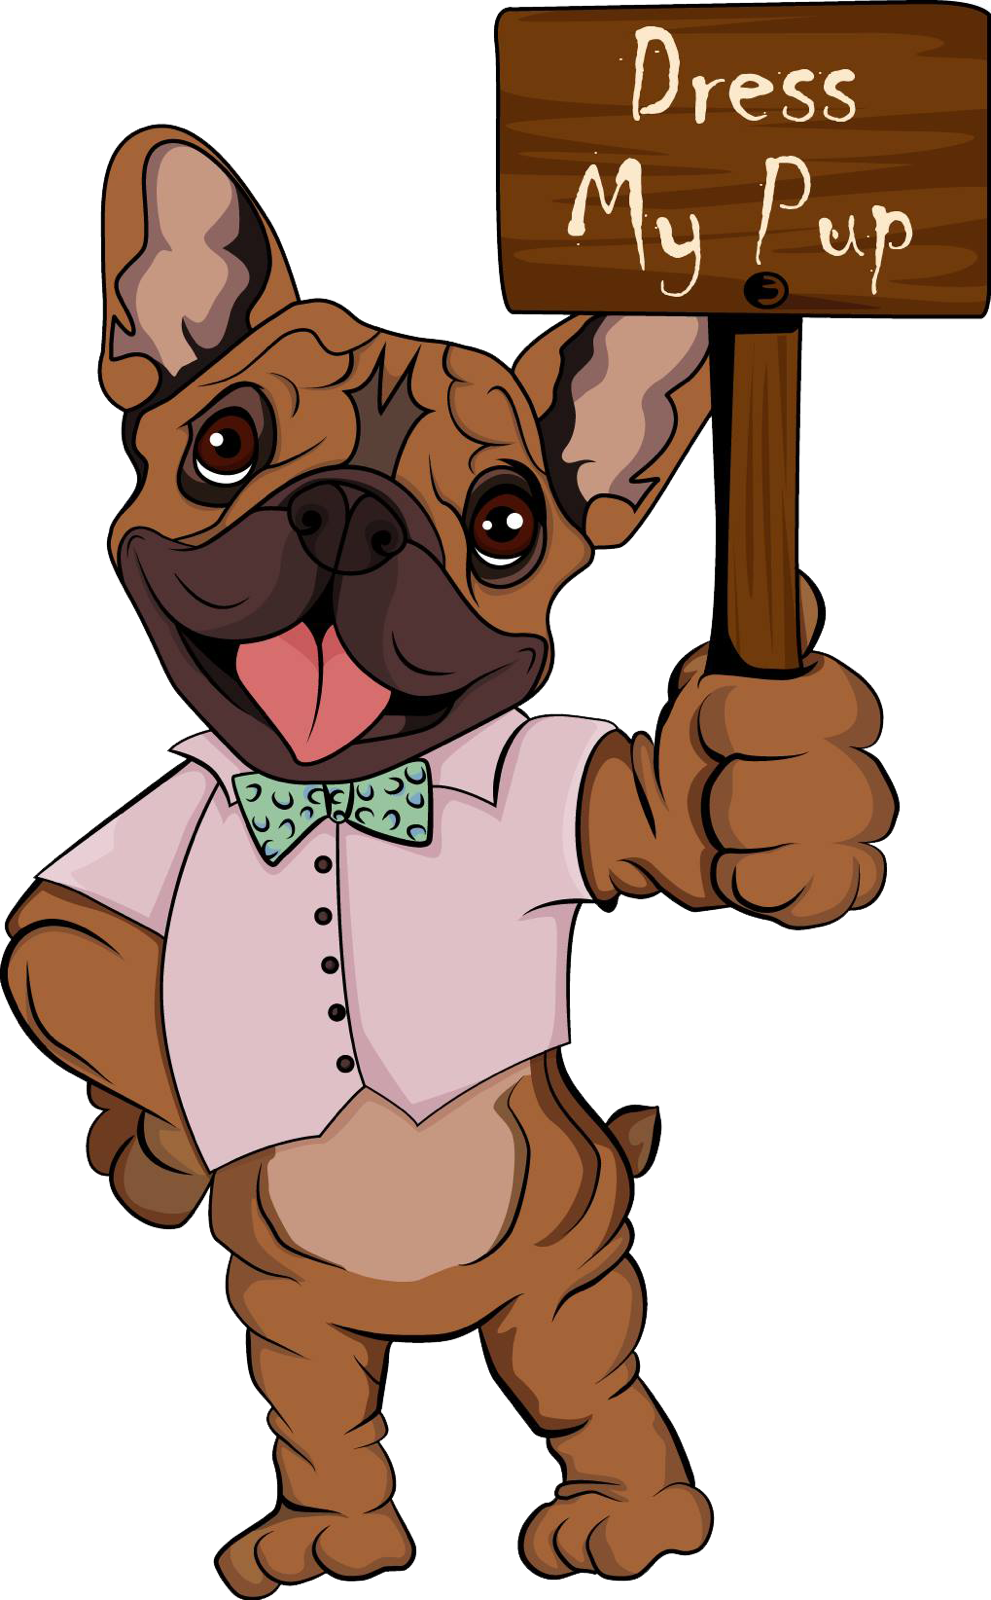 Dog collar leash clipart. Cheap clothing and accessories